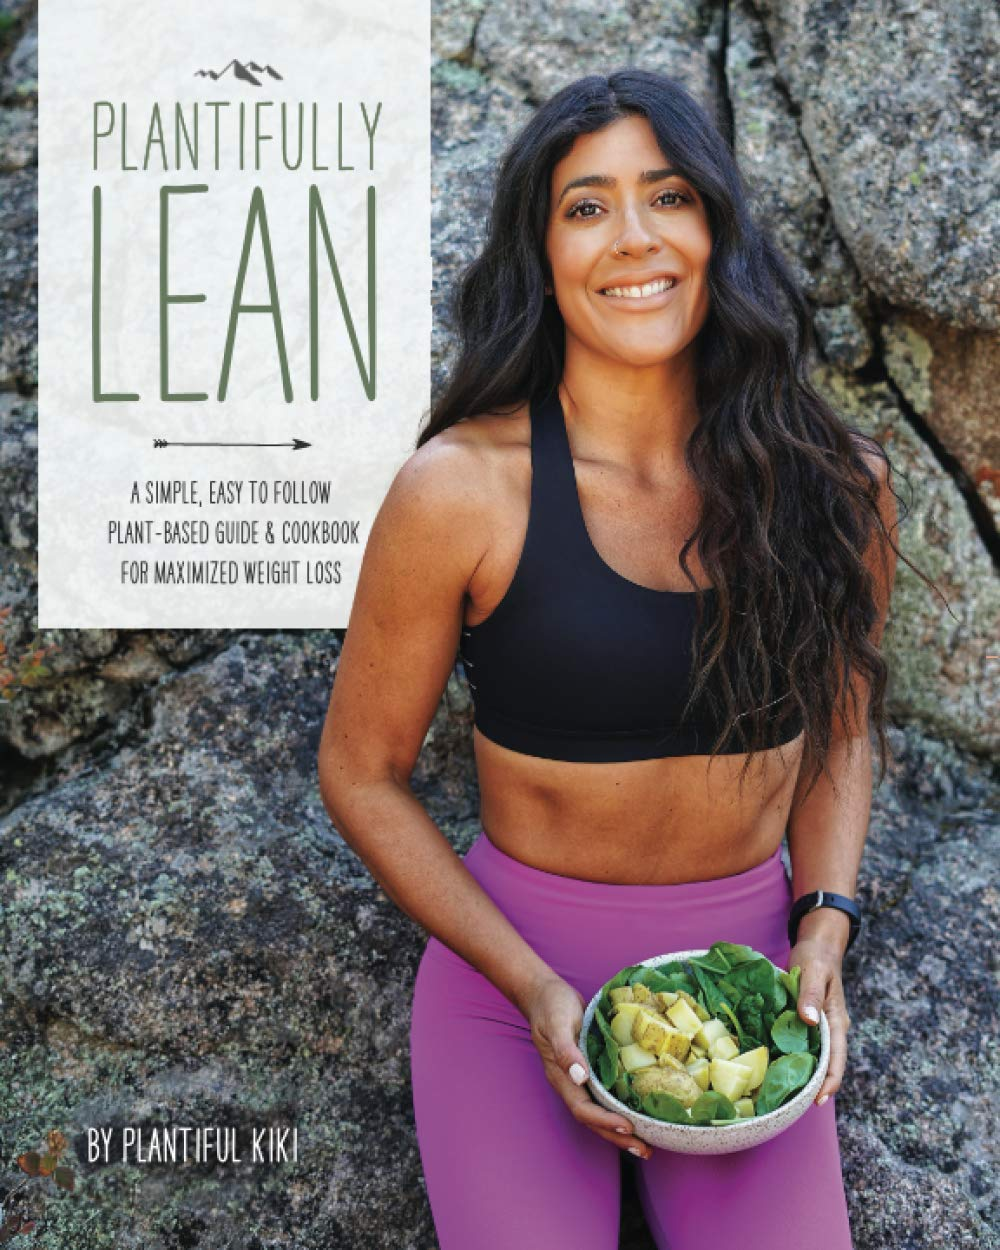 Plantifully Lean: A Simple, Easy to Follow Plant-Based Guide & Cookbook for Maximized Weight Loss 1